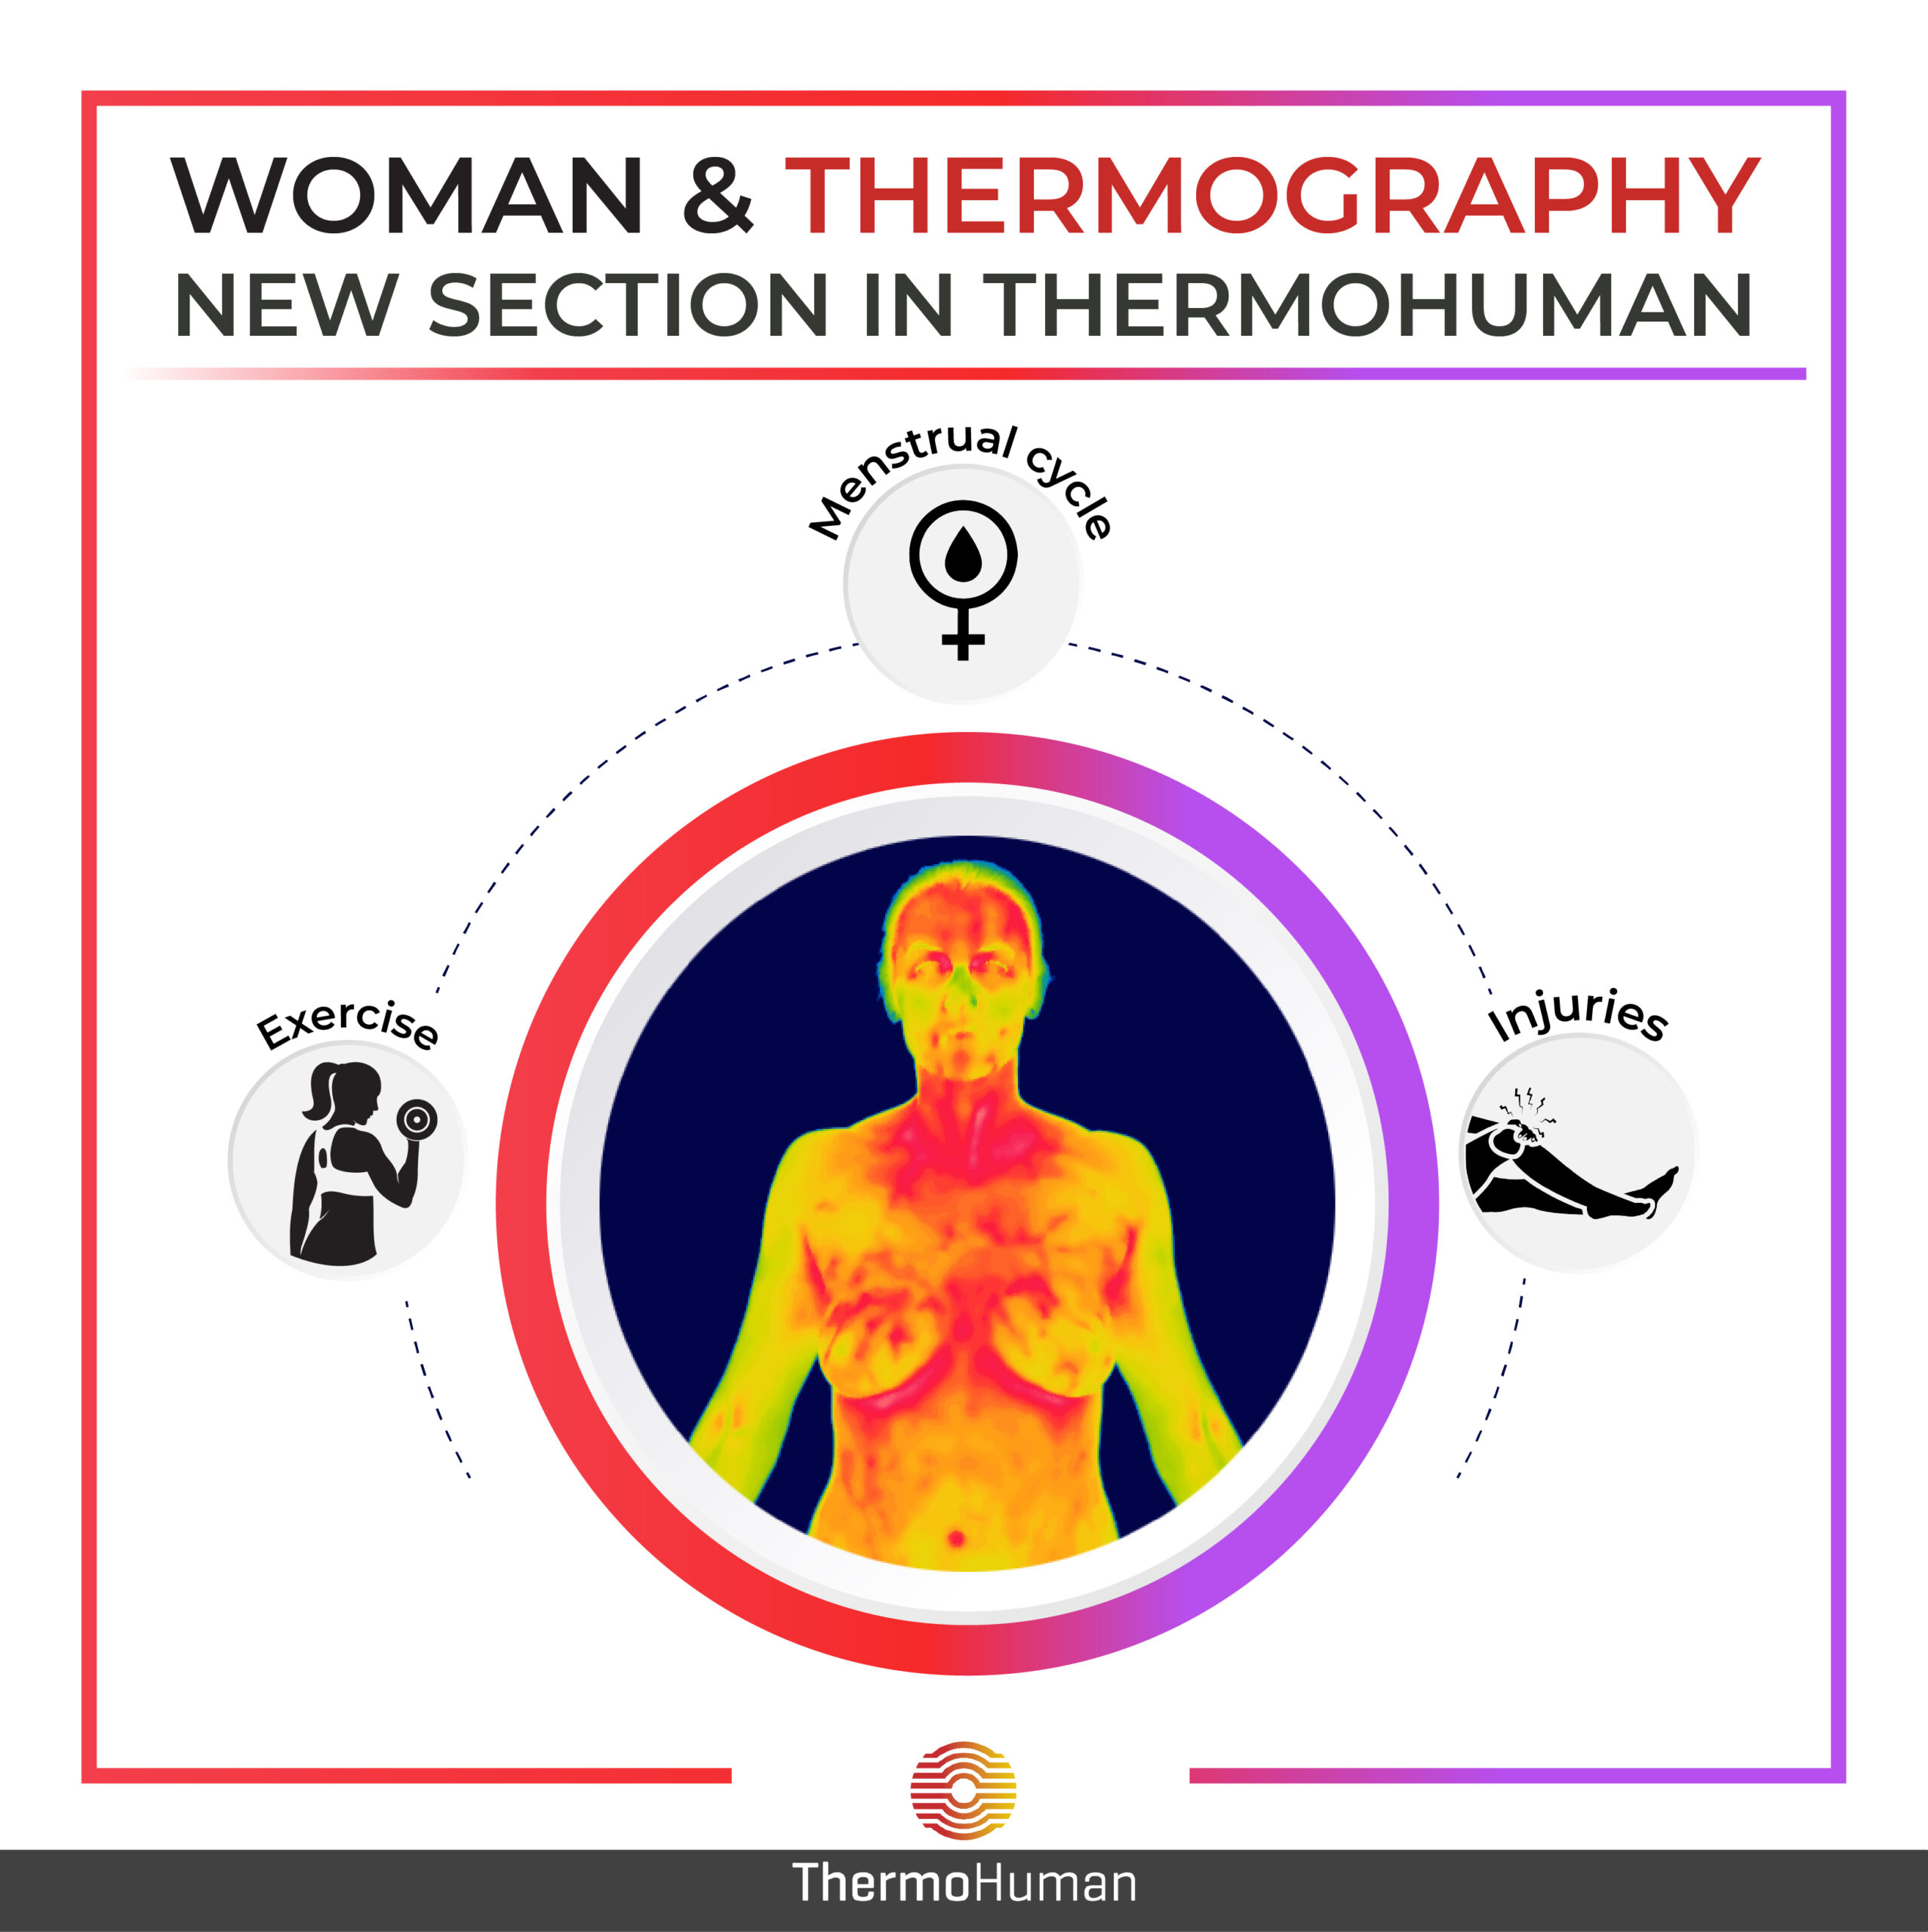 WOMAN & THERMOGRAPHY. New section in ThermoHuman